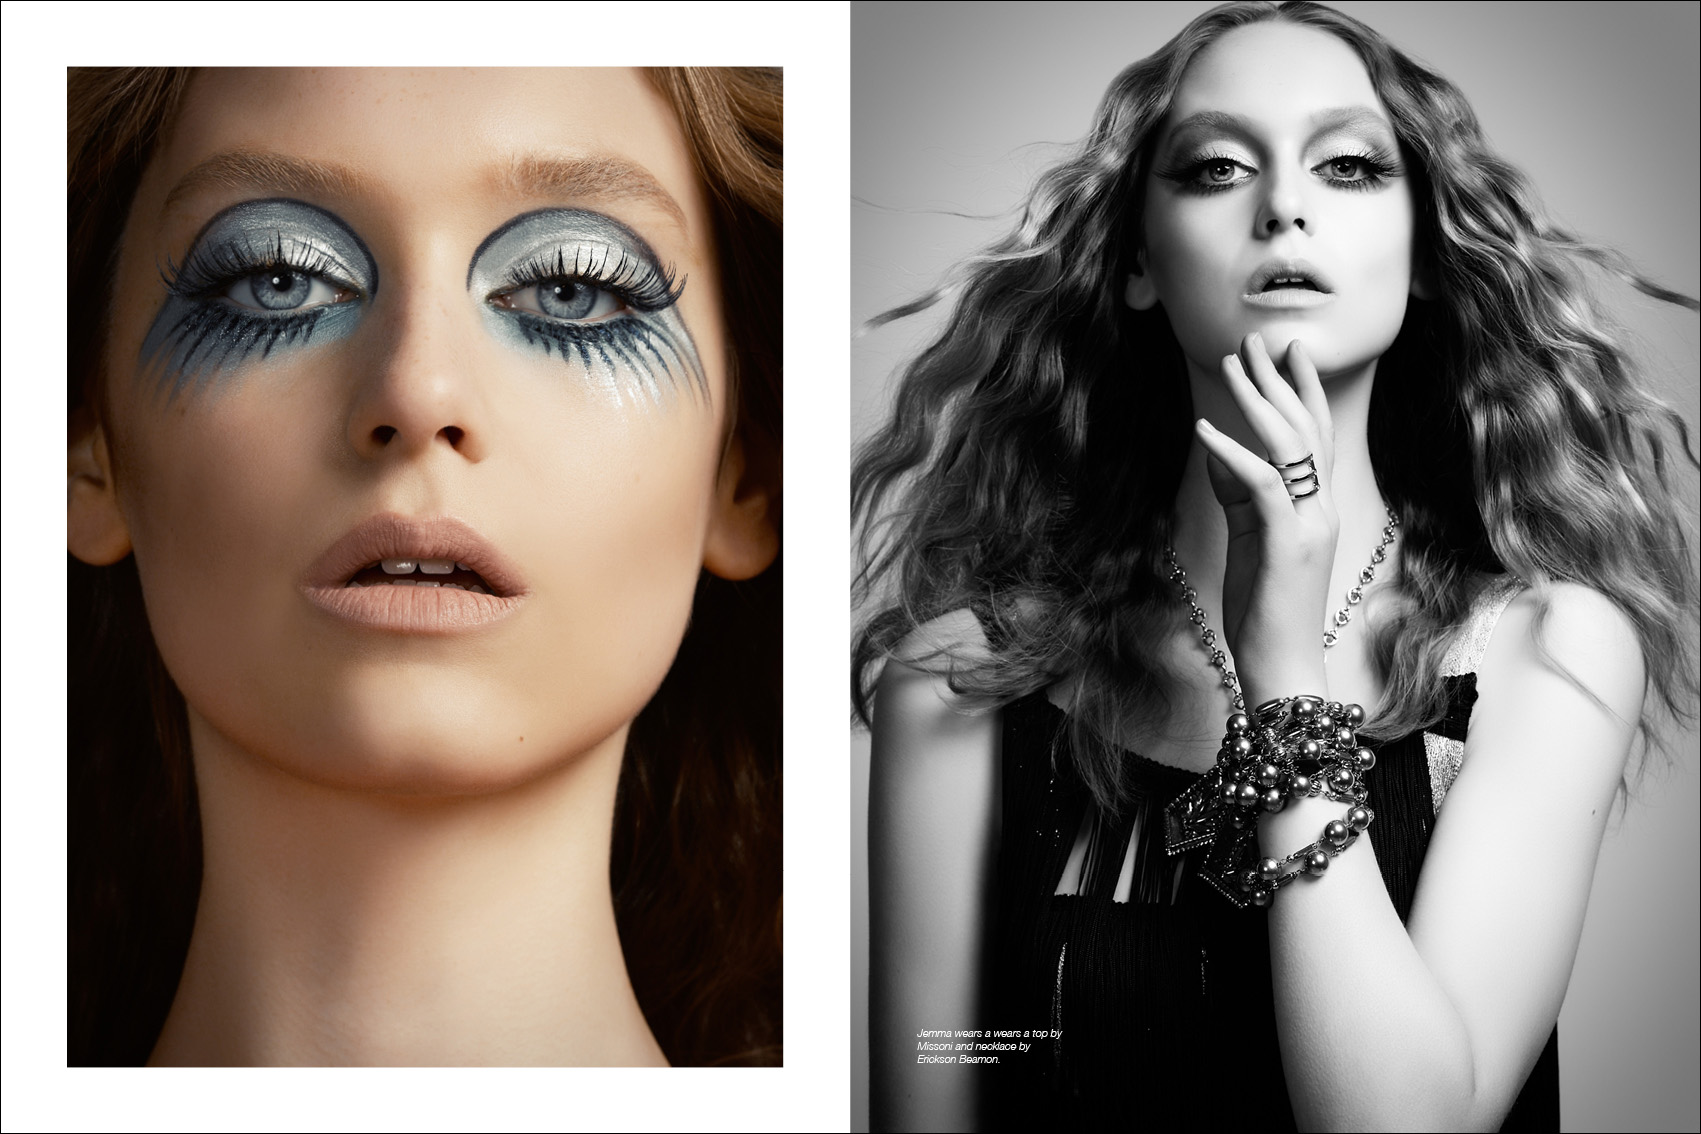 Jemma Baines - The Untitled Magazine - Photography by Indira Cesarine